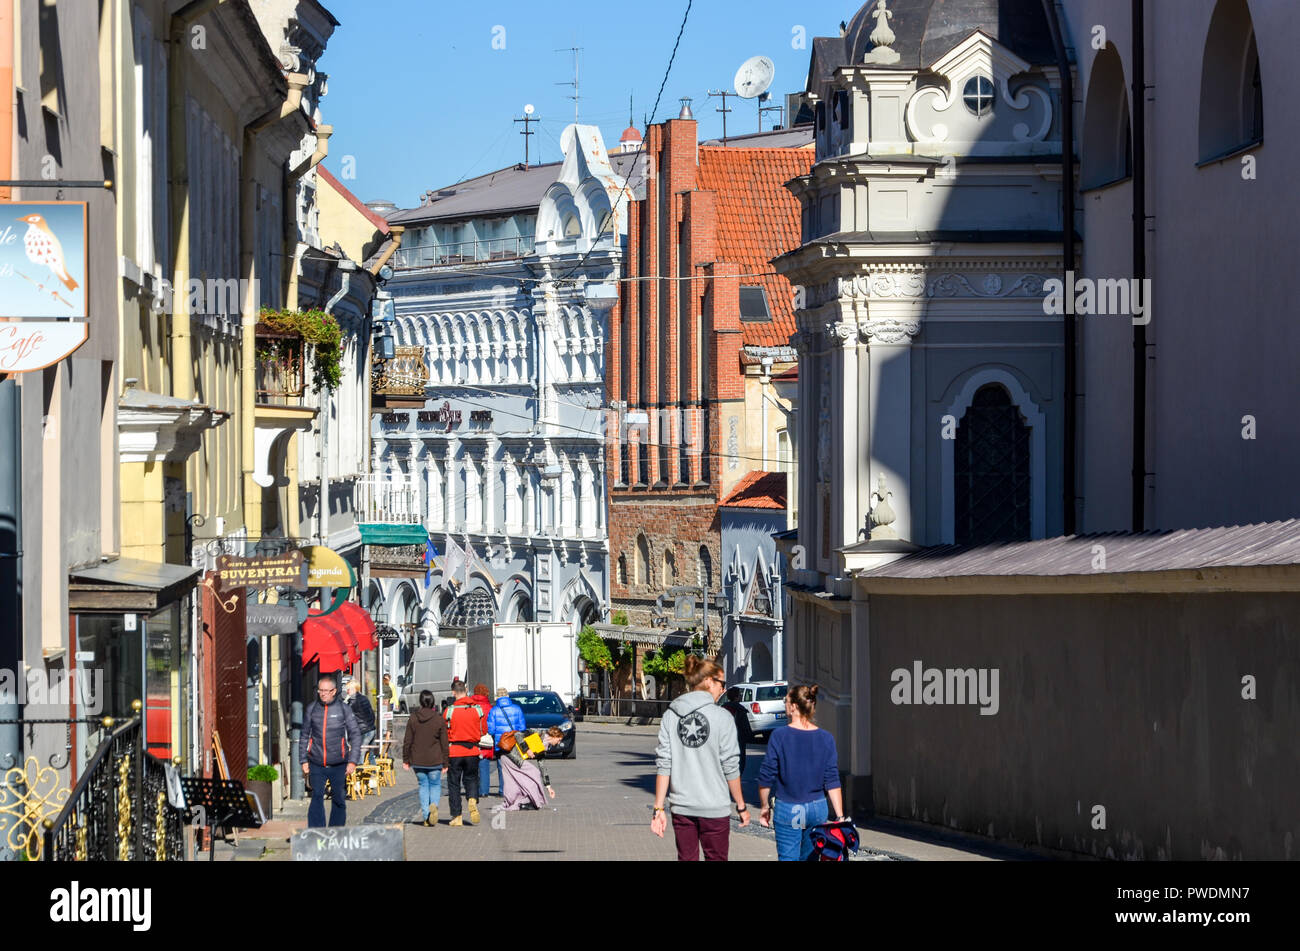 City centre of Vilnius, Lithuania - Stock Image